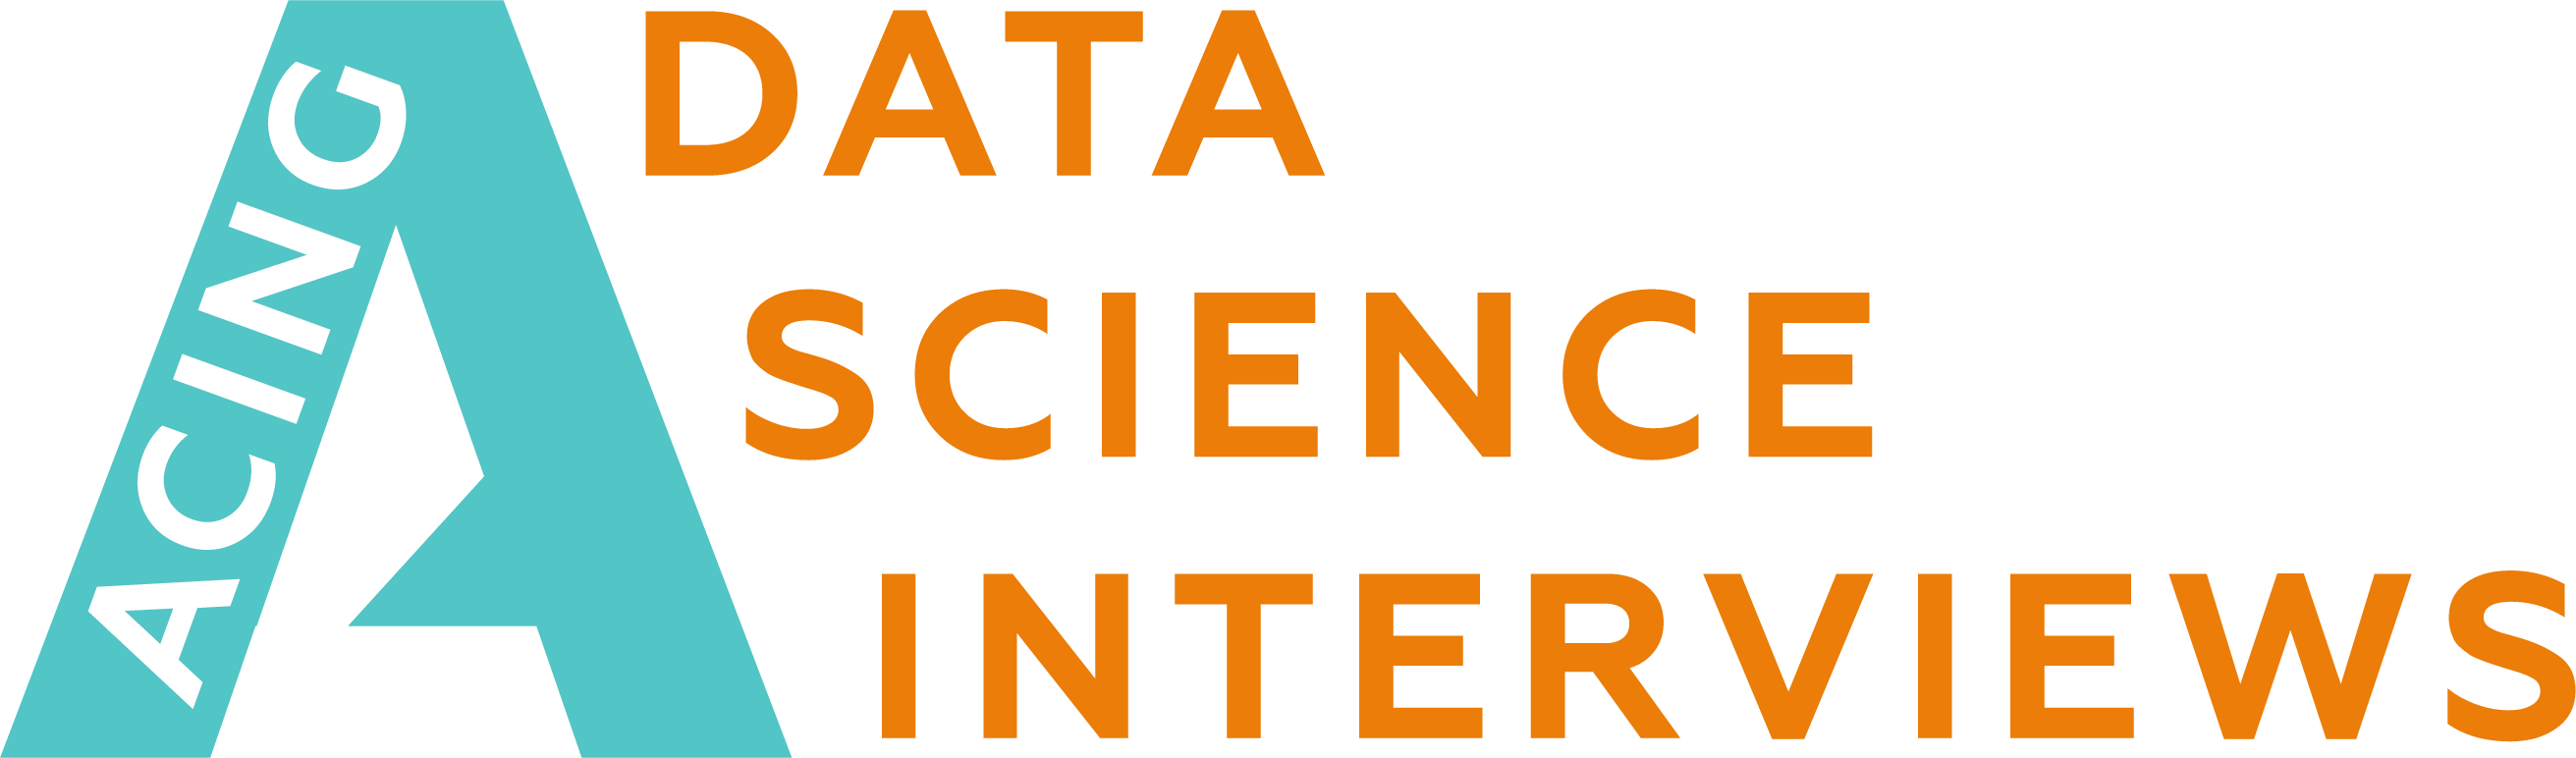 Acing Data Science Interviews